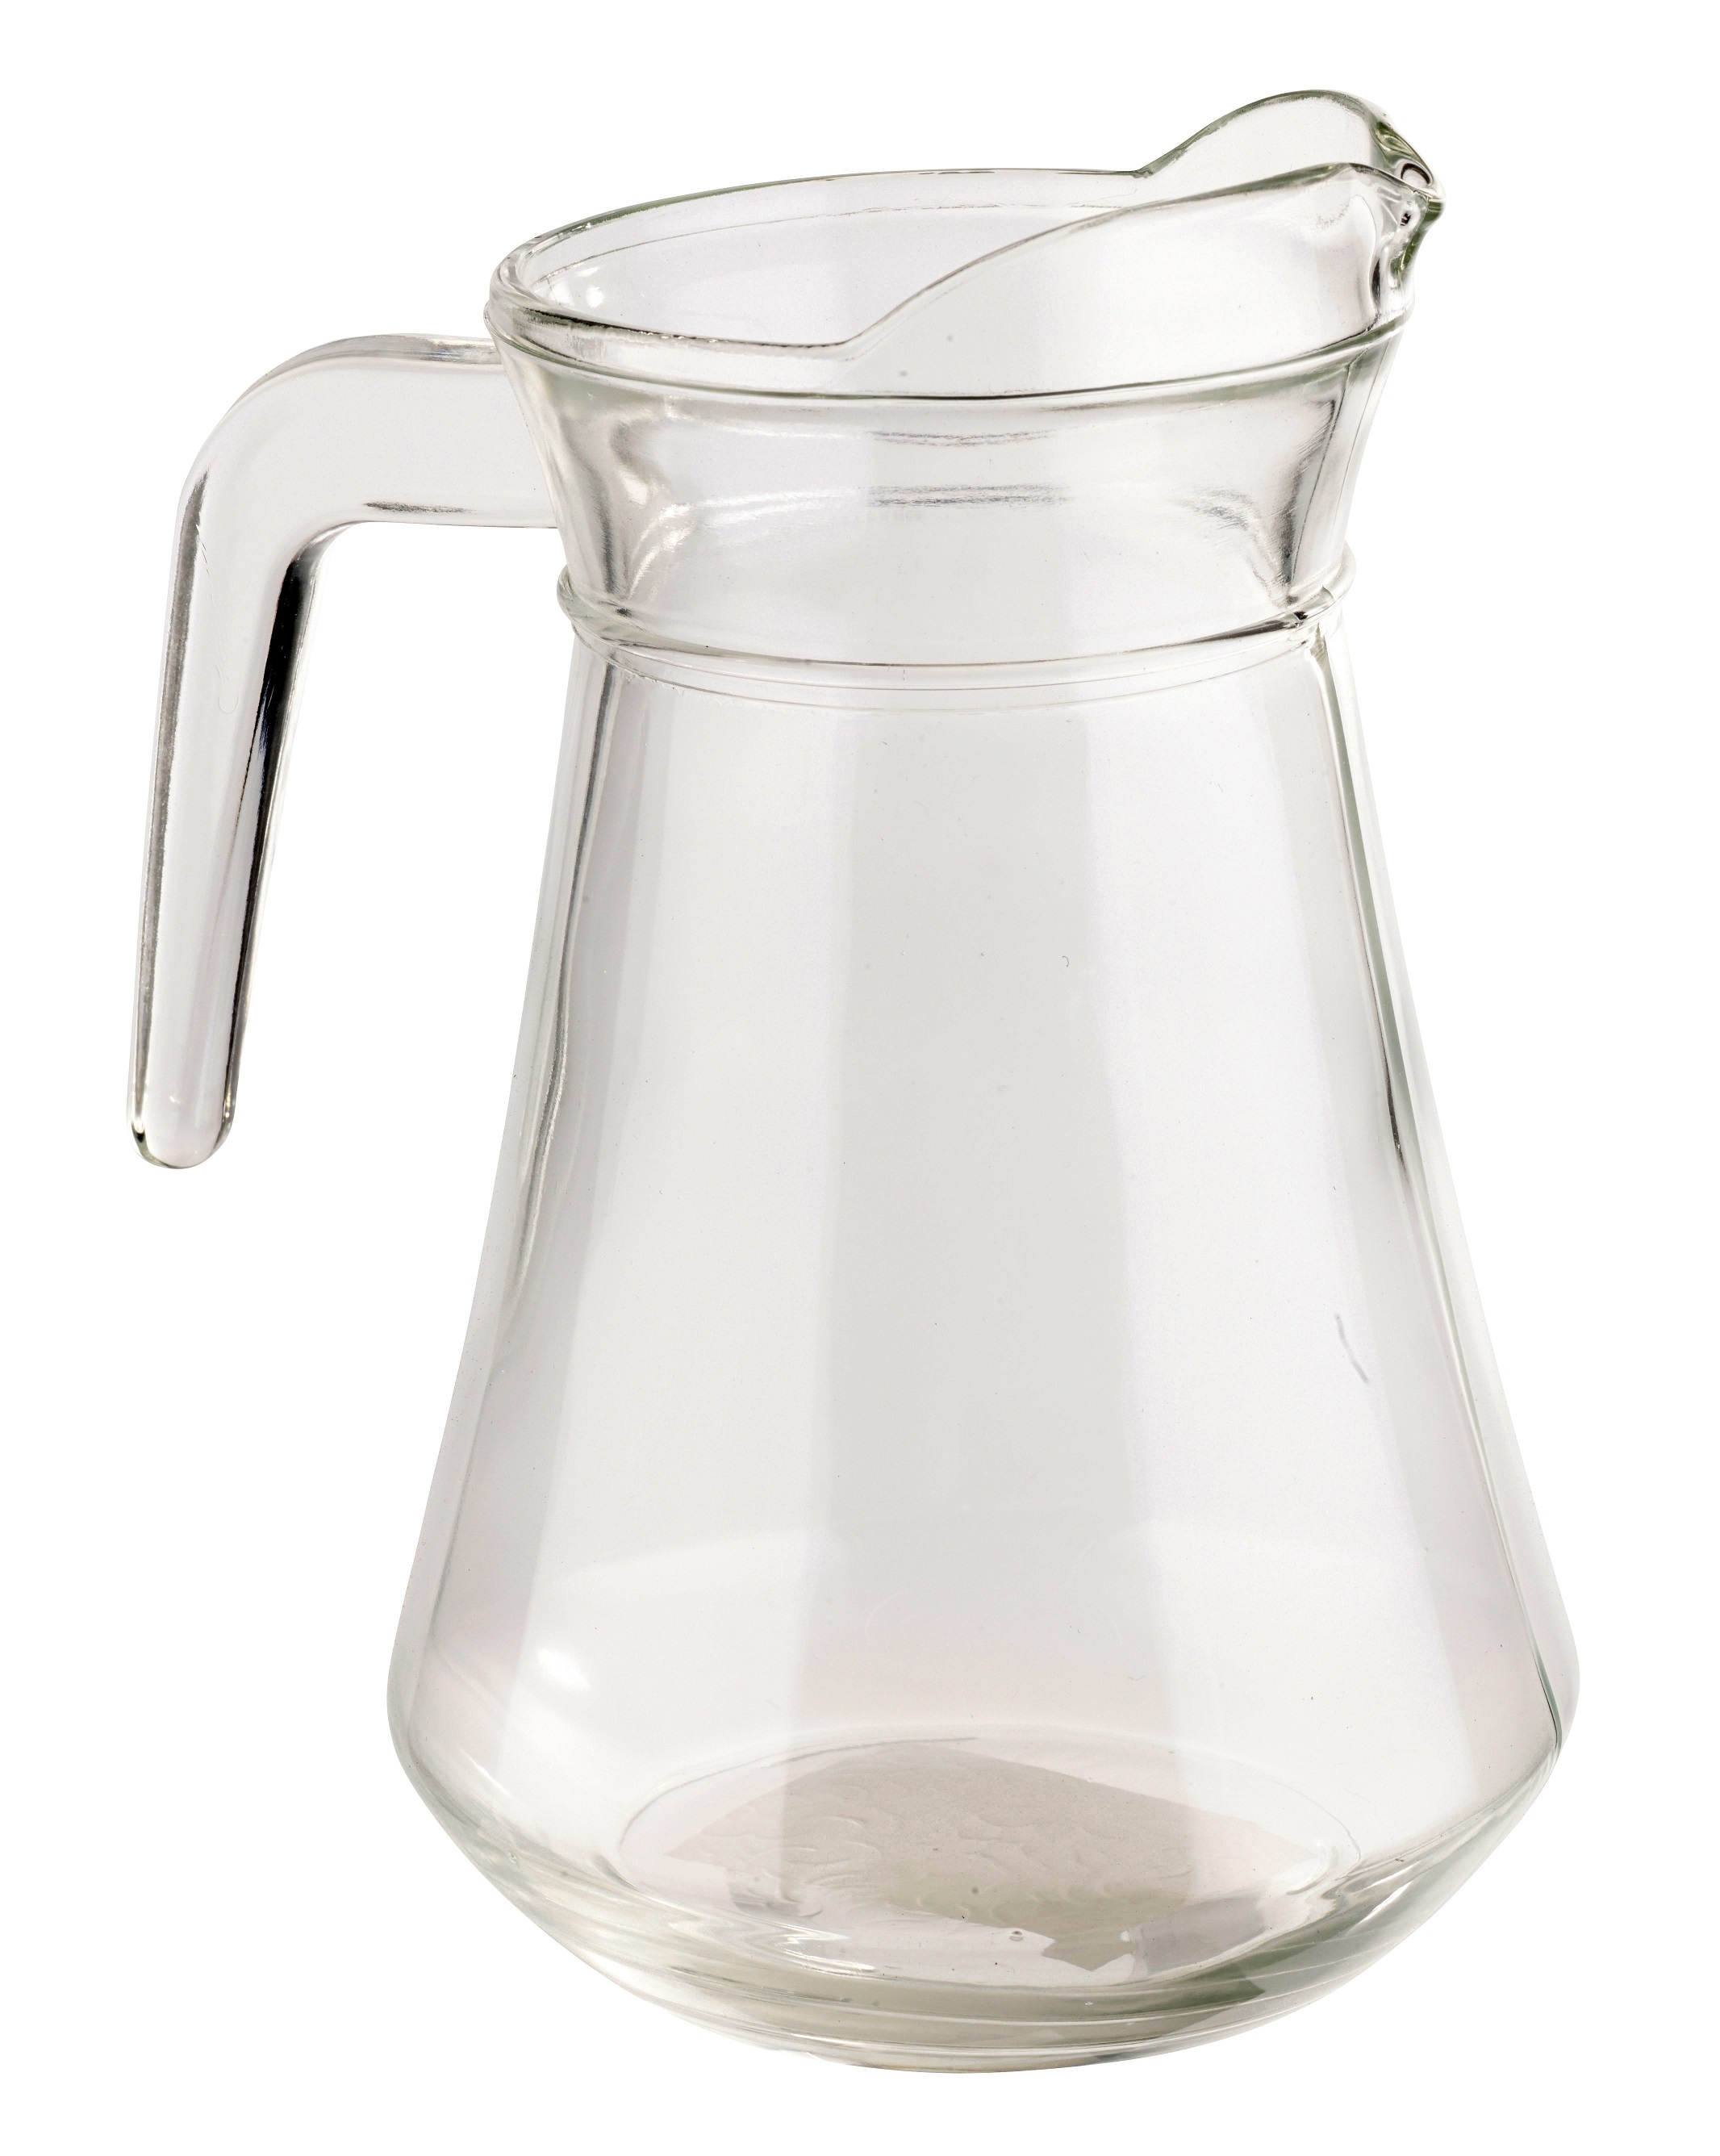 Water jug glass